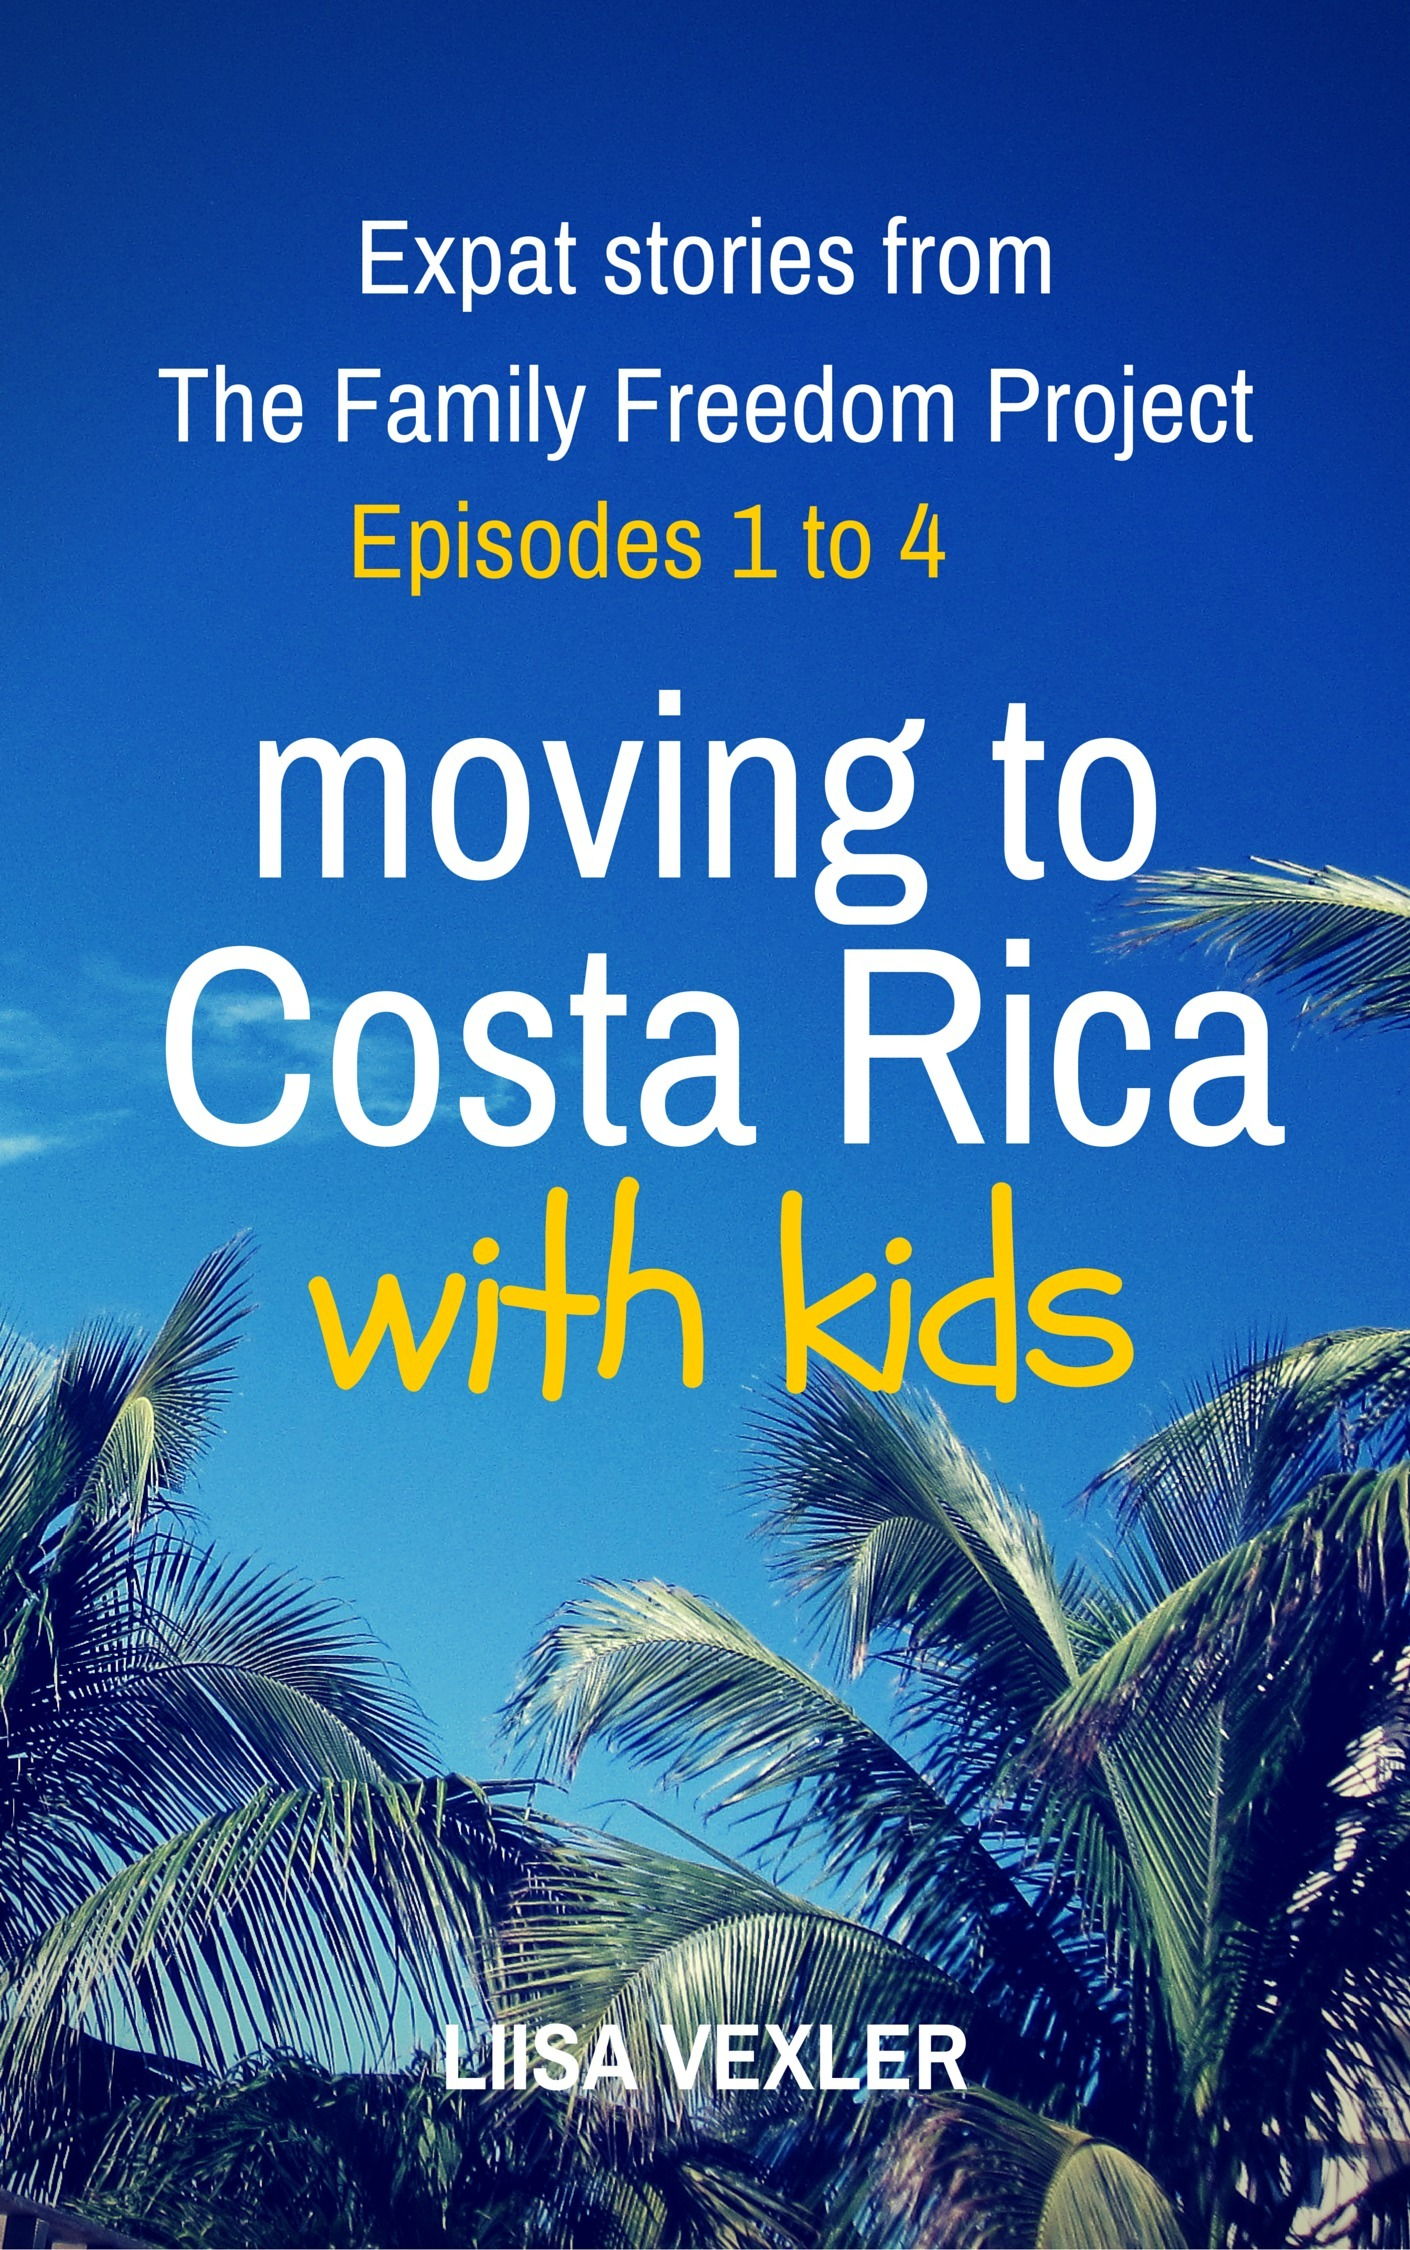 Moving to Costa Rica with Kids: Expat Stories from The Family Freedom Project - Episodes 1 to 4 Liisa Vexler